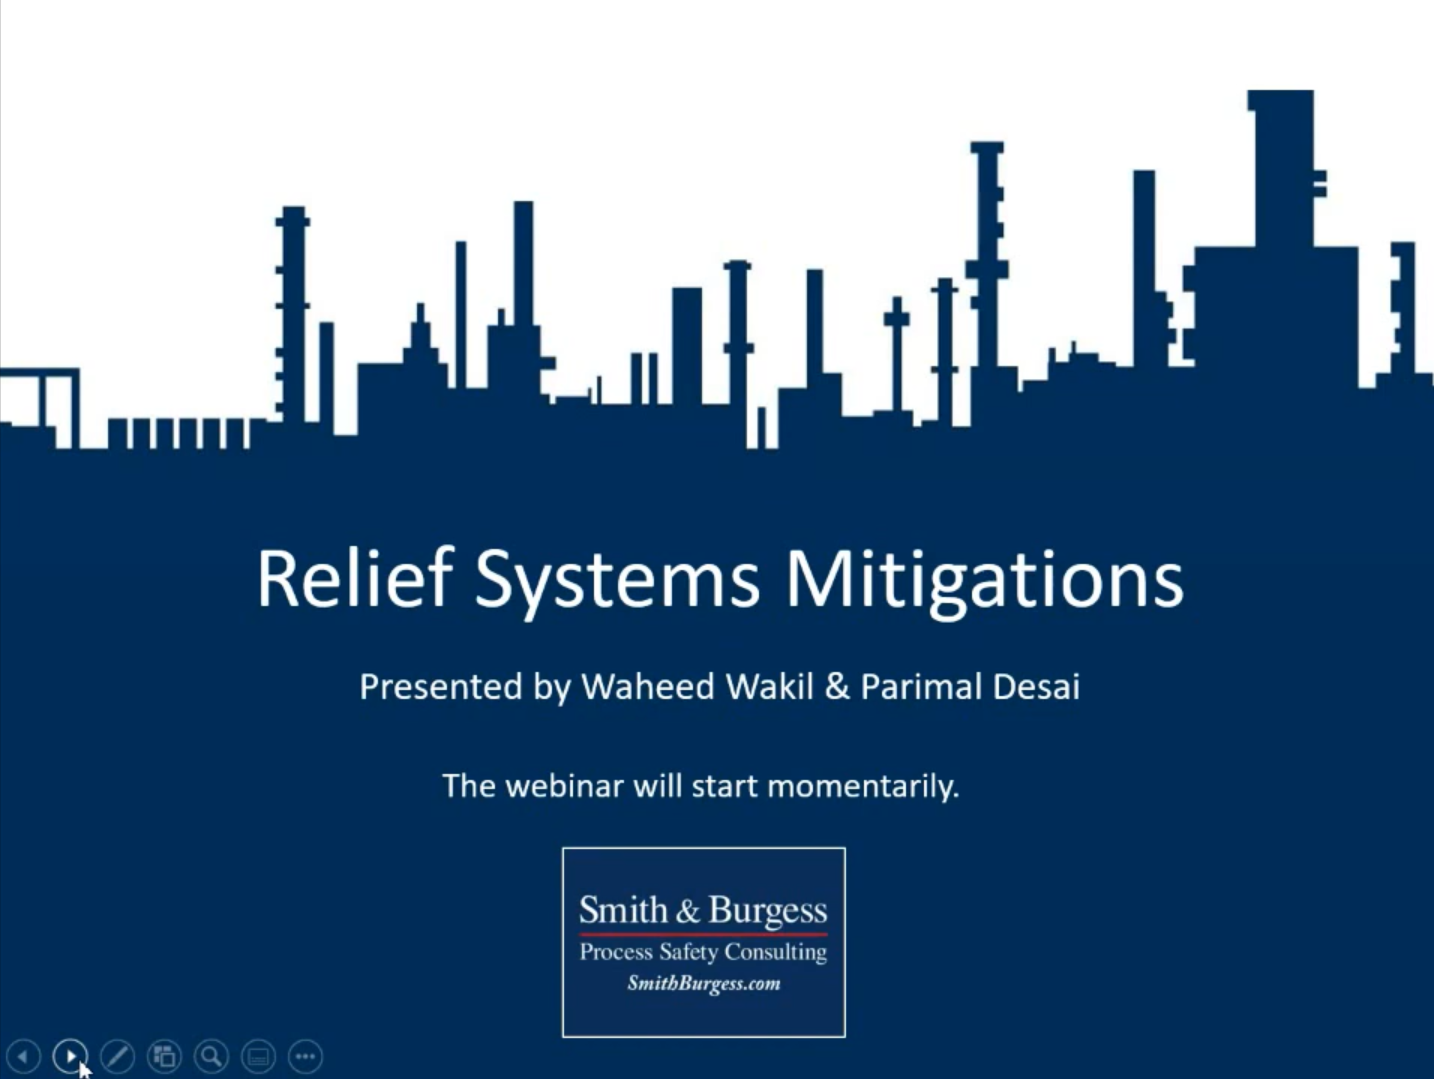 Relief Systems Mitigation